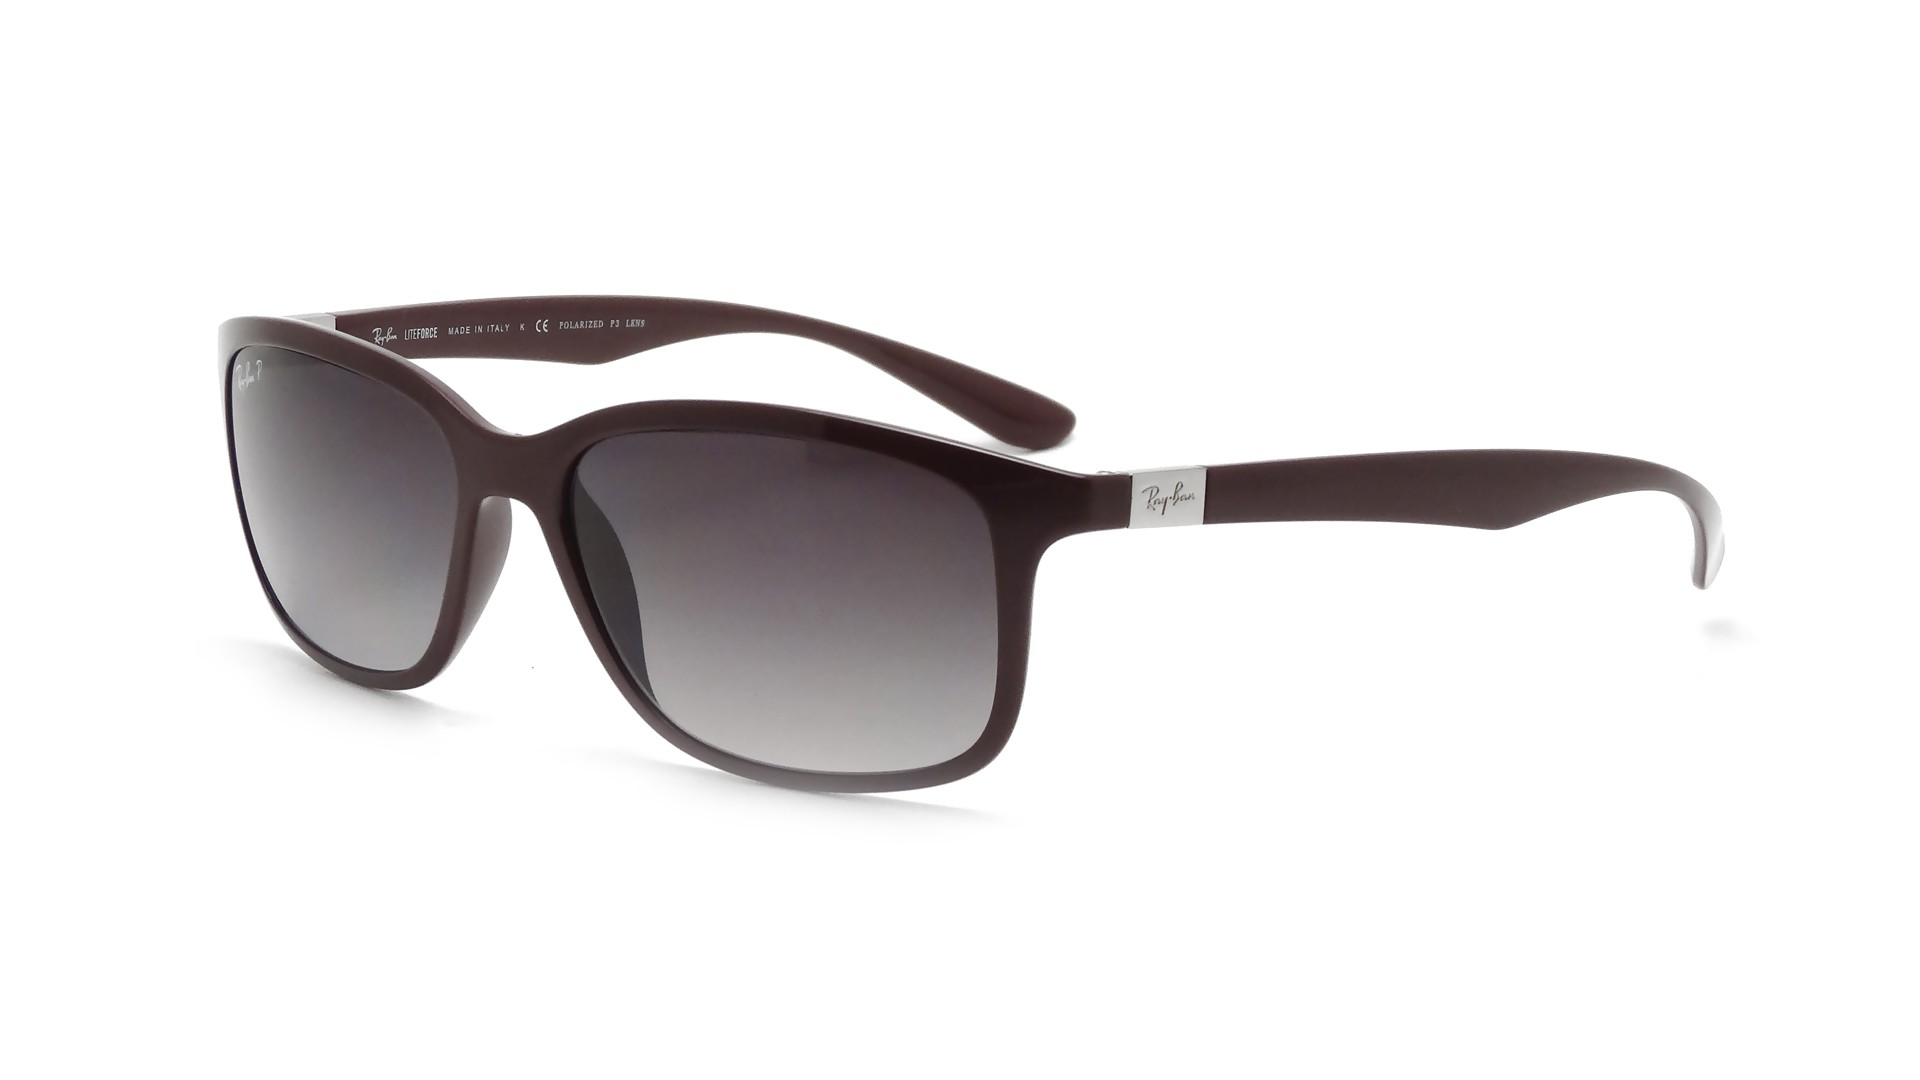 Ray Ban Liteforce Femme « Heritage Malta da12a4d00068